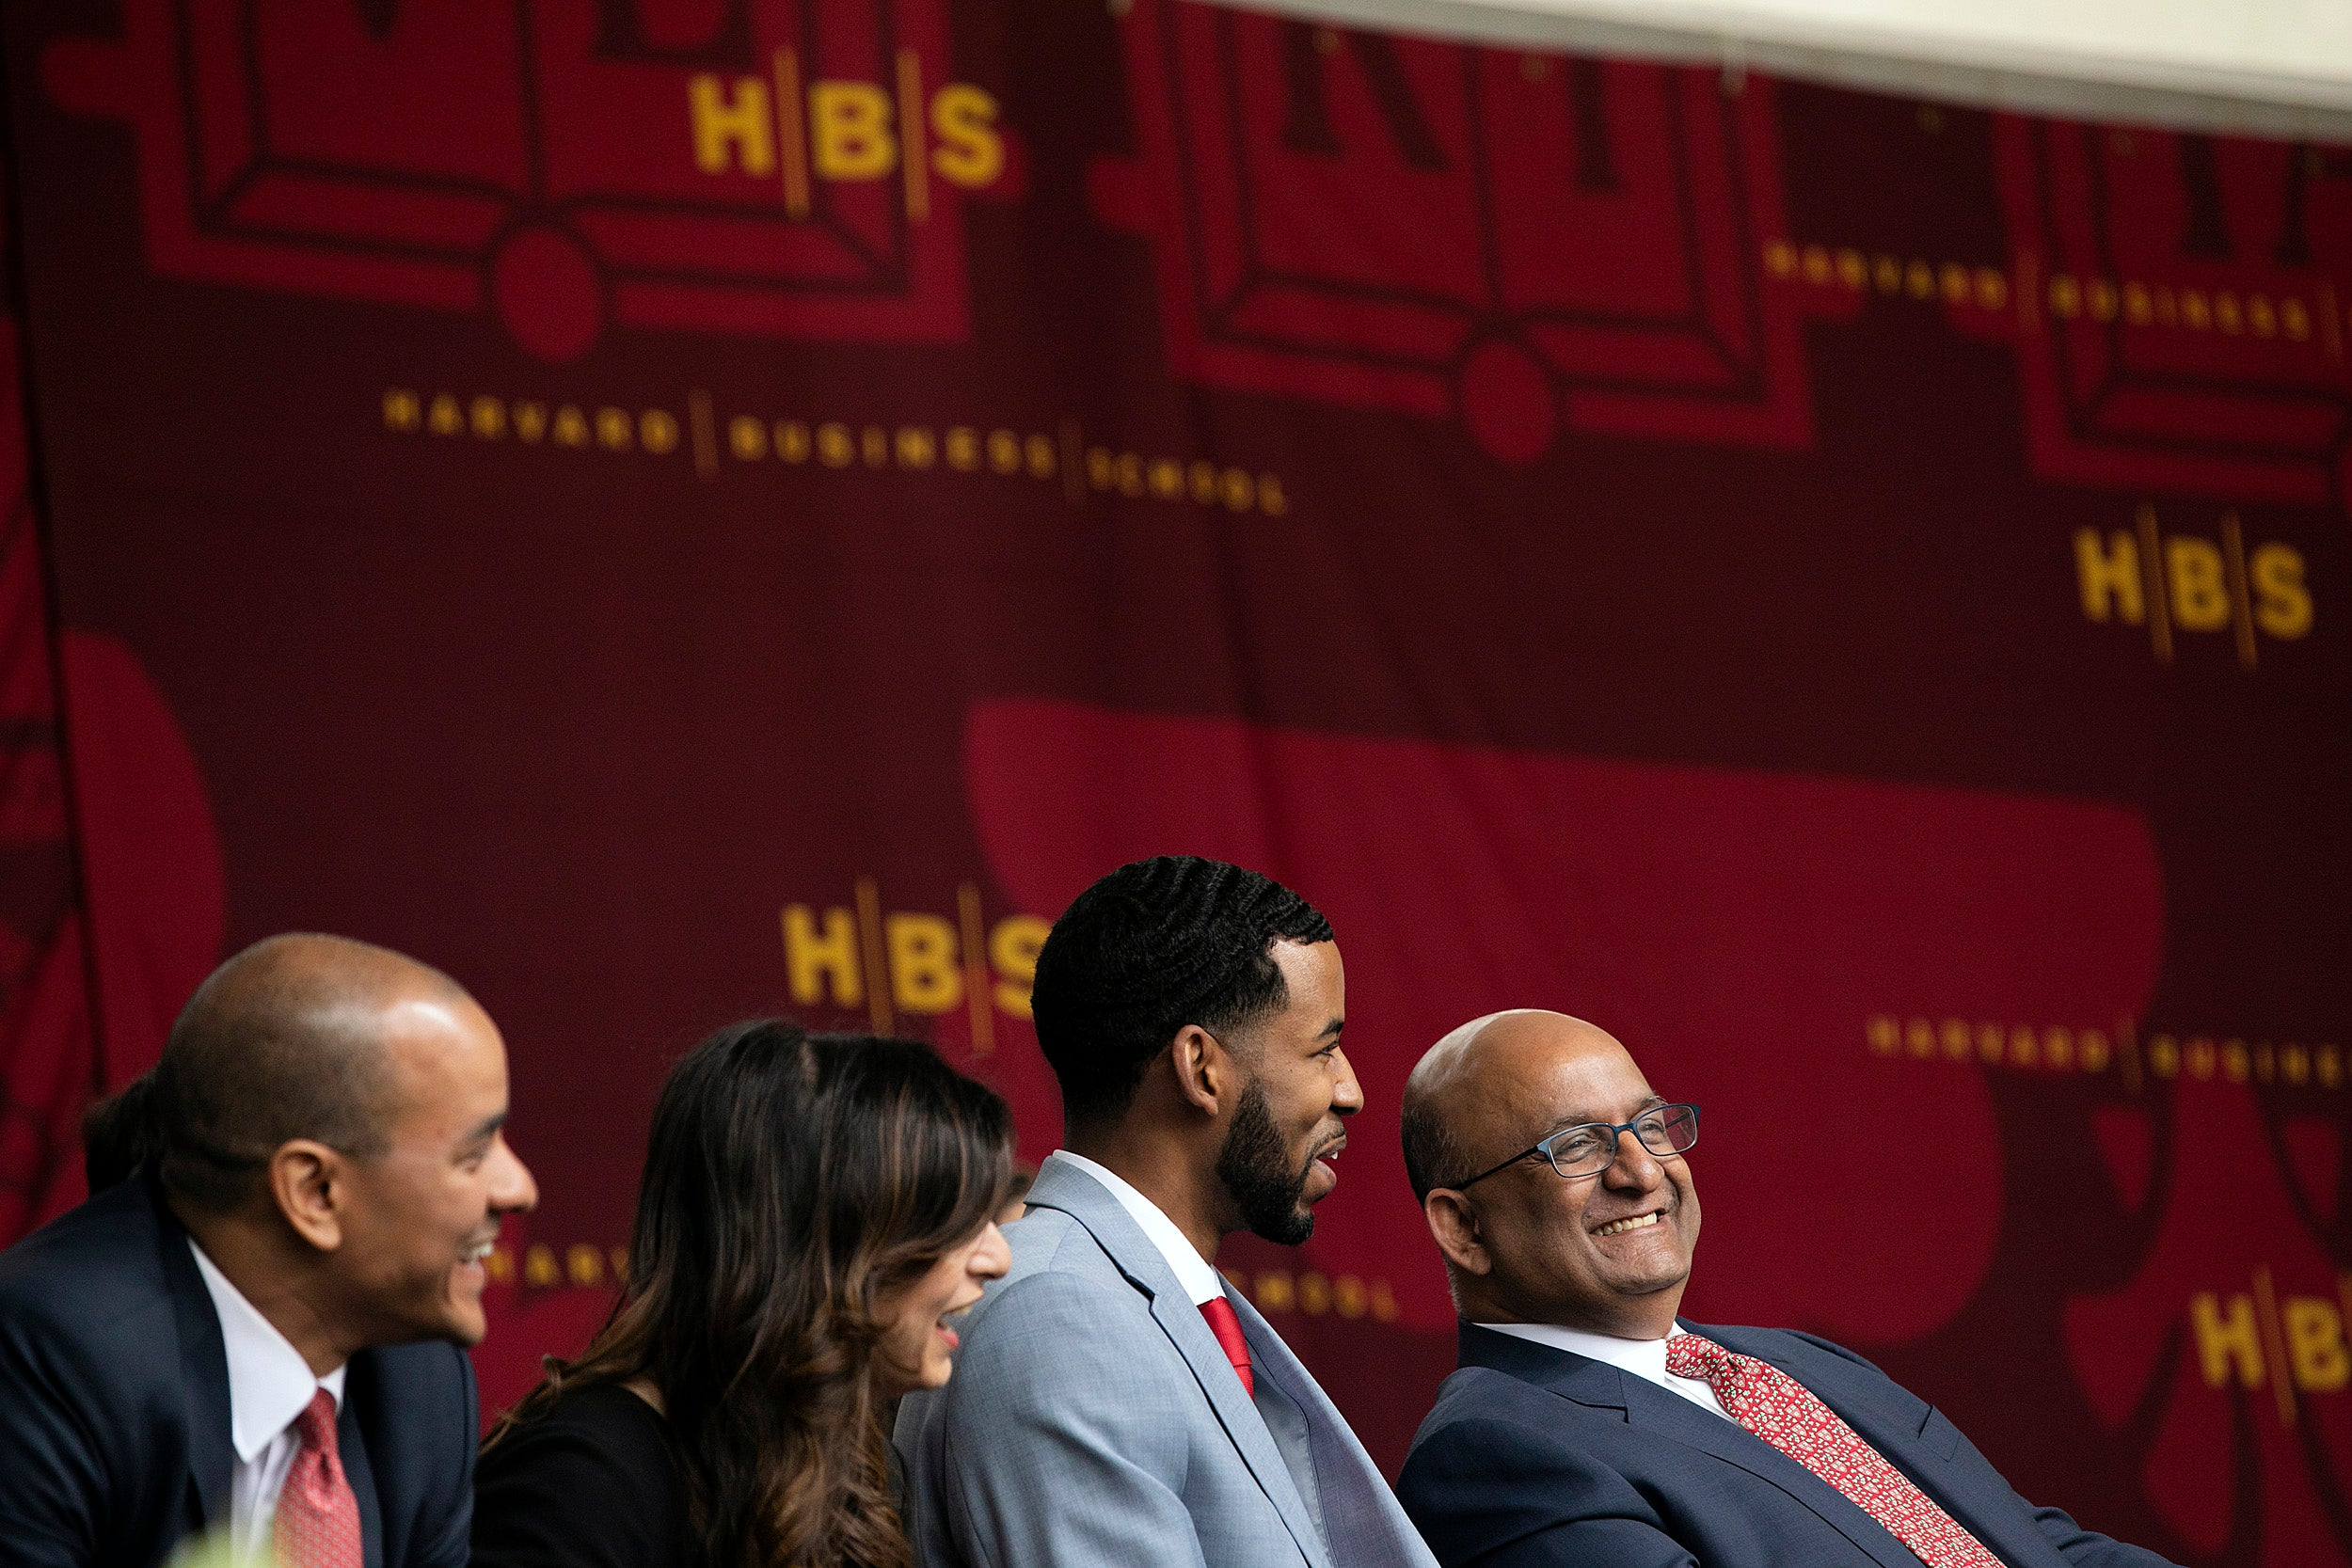 M.B.A. Class of 2019 Student Association Co-Presidents Triston Jay Francis (from left) and Sana Mohammed, join Class Day student speaker Brandon Rapp, and HBS Dean Nitin Nohria onstage during HBS Class Day. Stephanie Mitchell/Harvard Staff Photographer